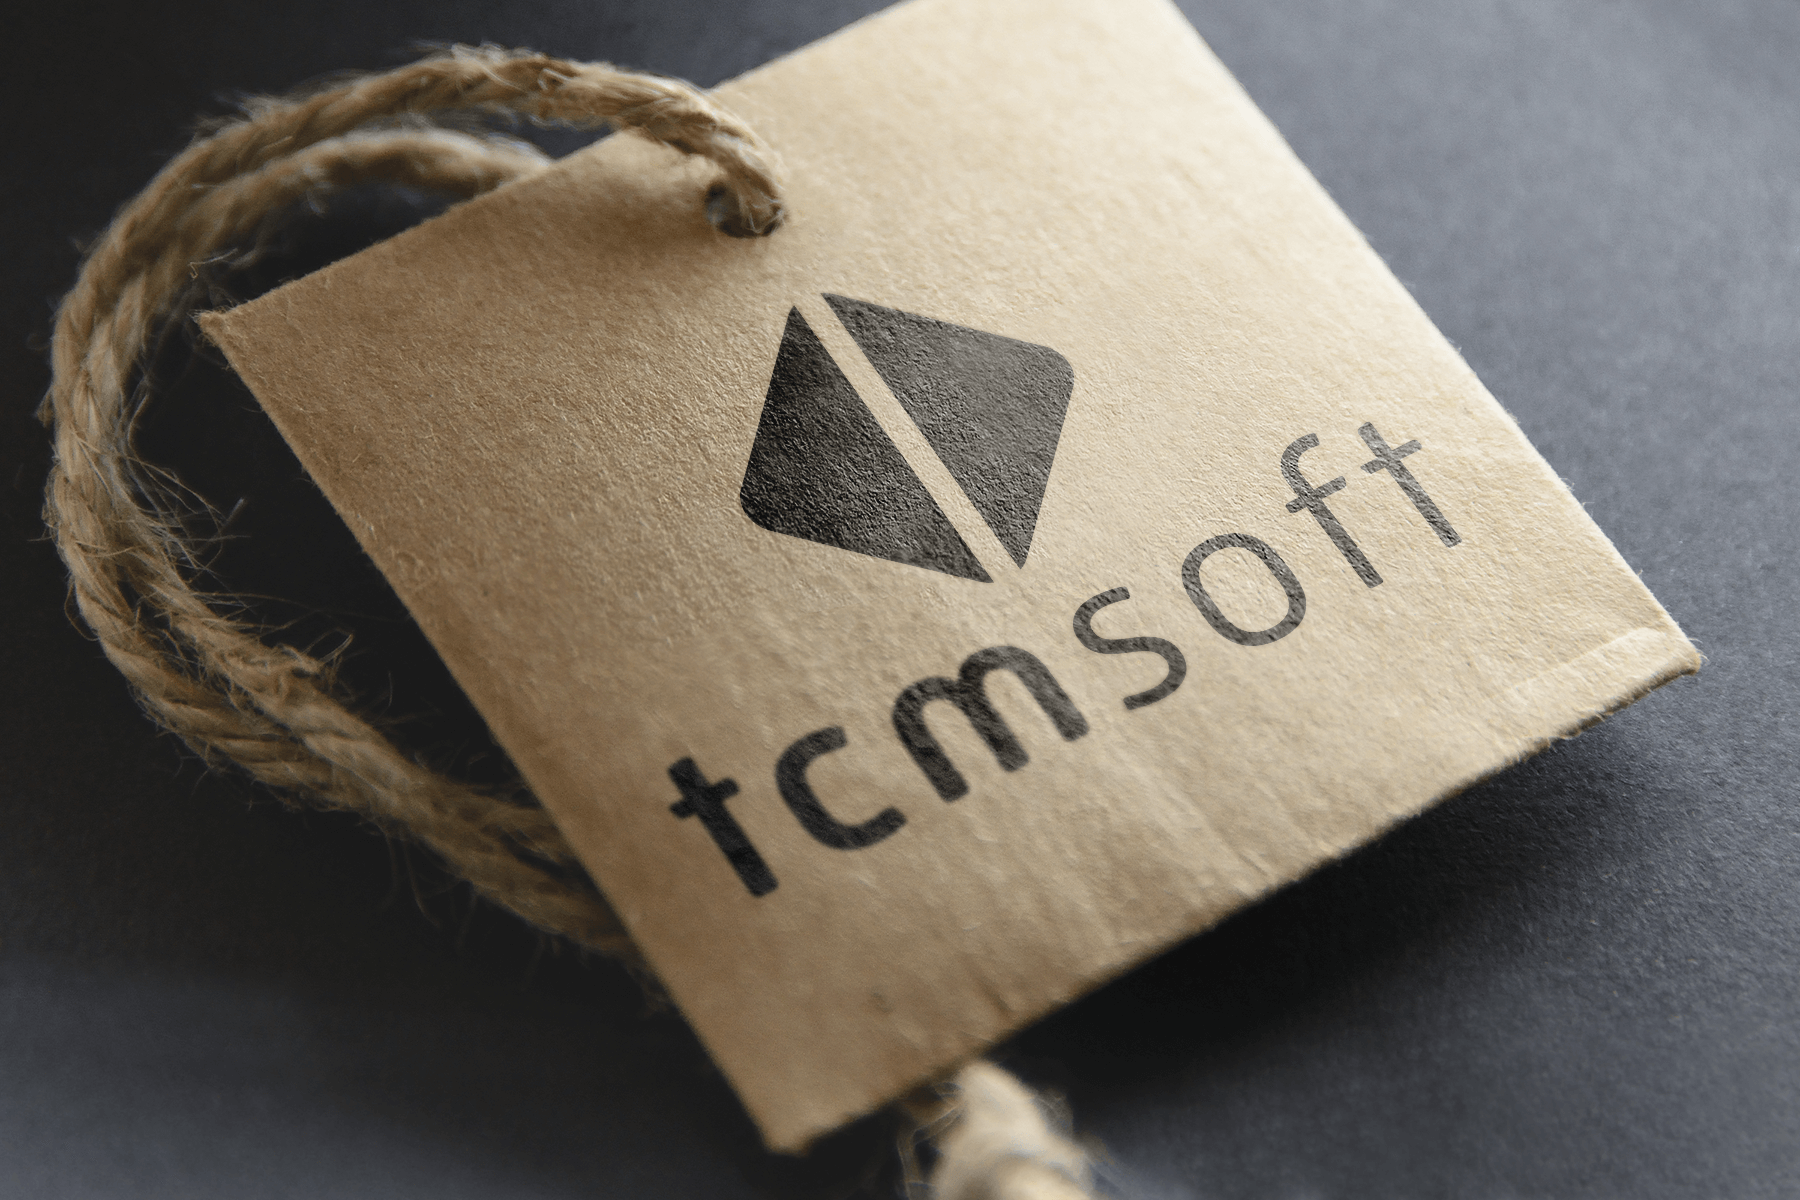 Logo TCMsoft. Design: Werner Schauer, triptychon corporate communications